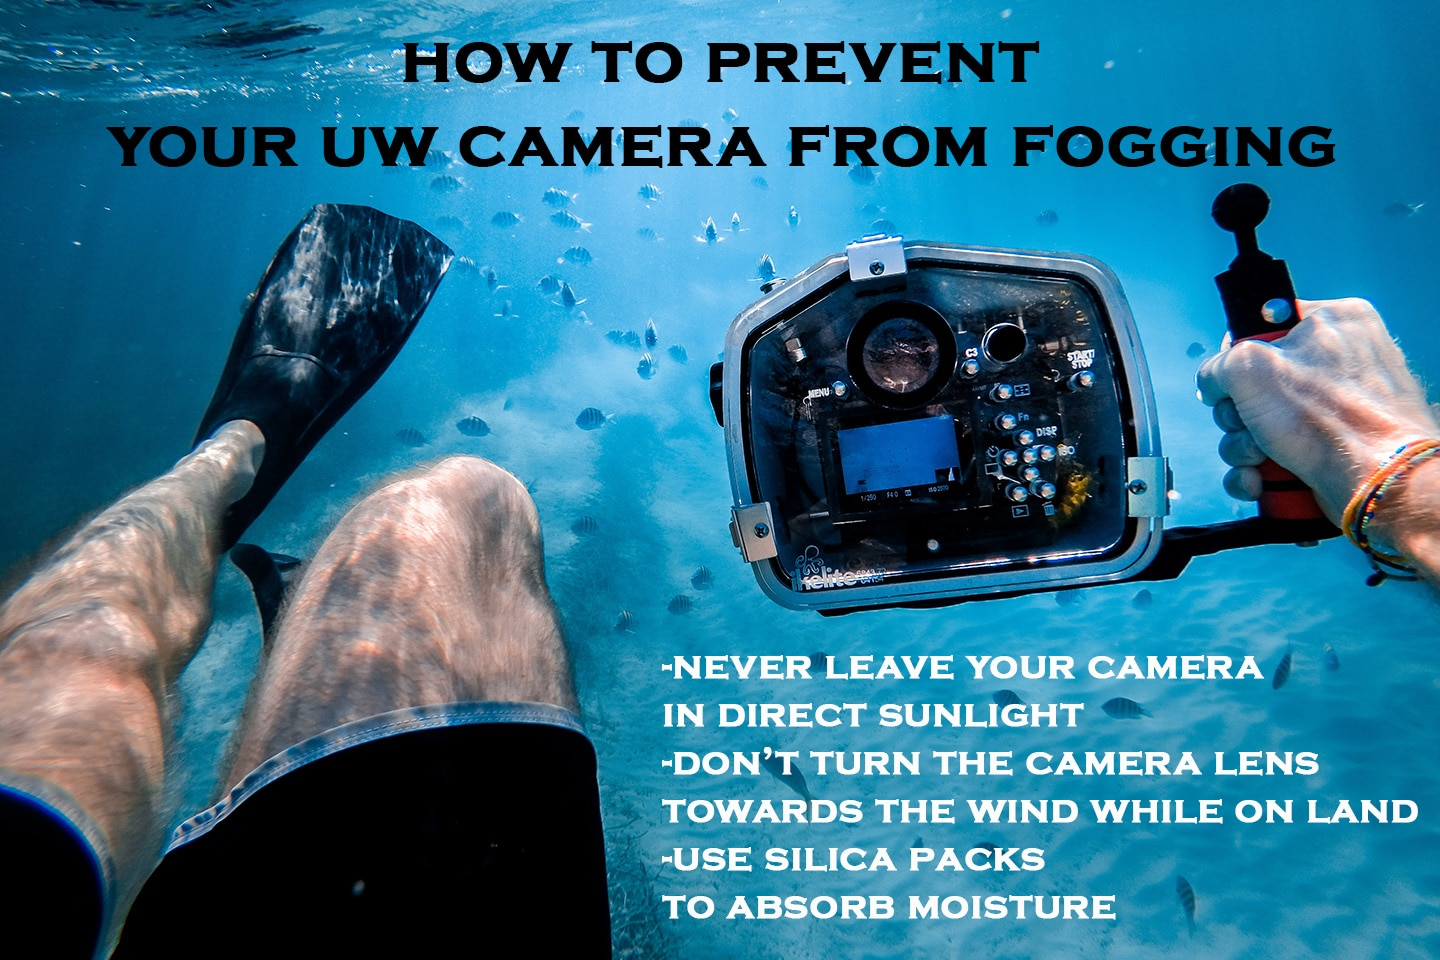 how to prevent waterproof camera fogging